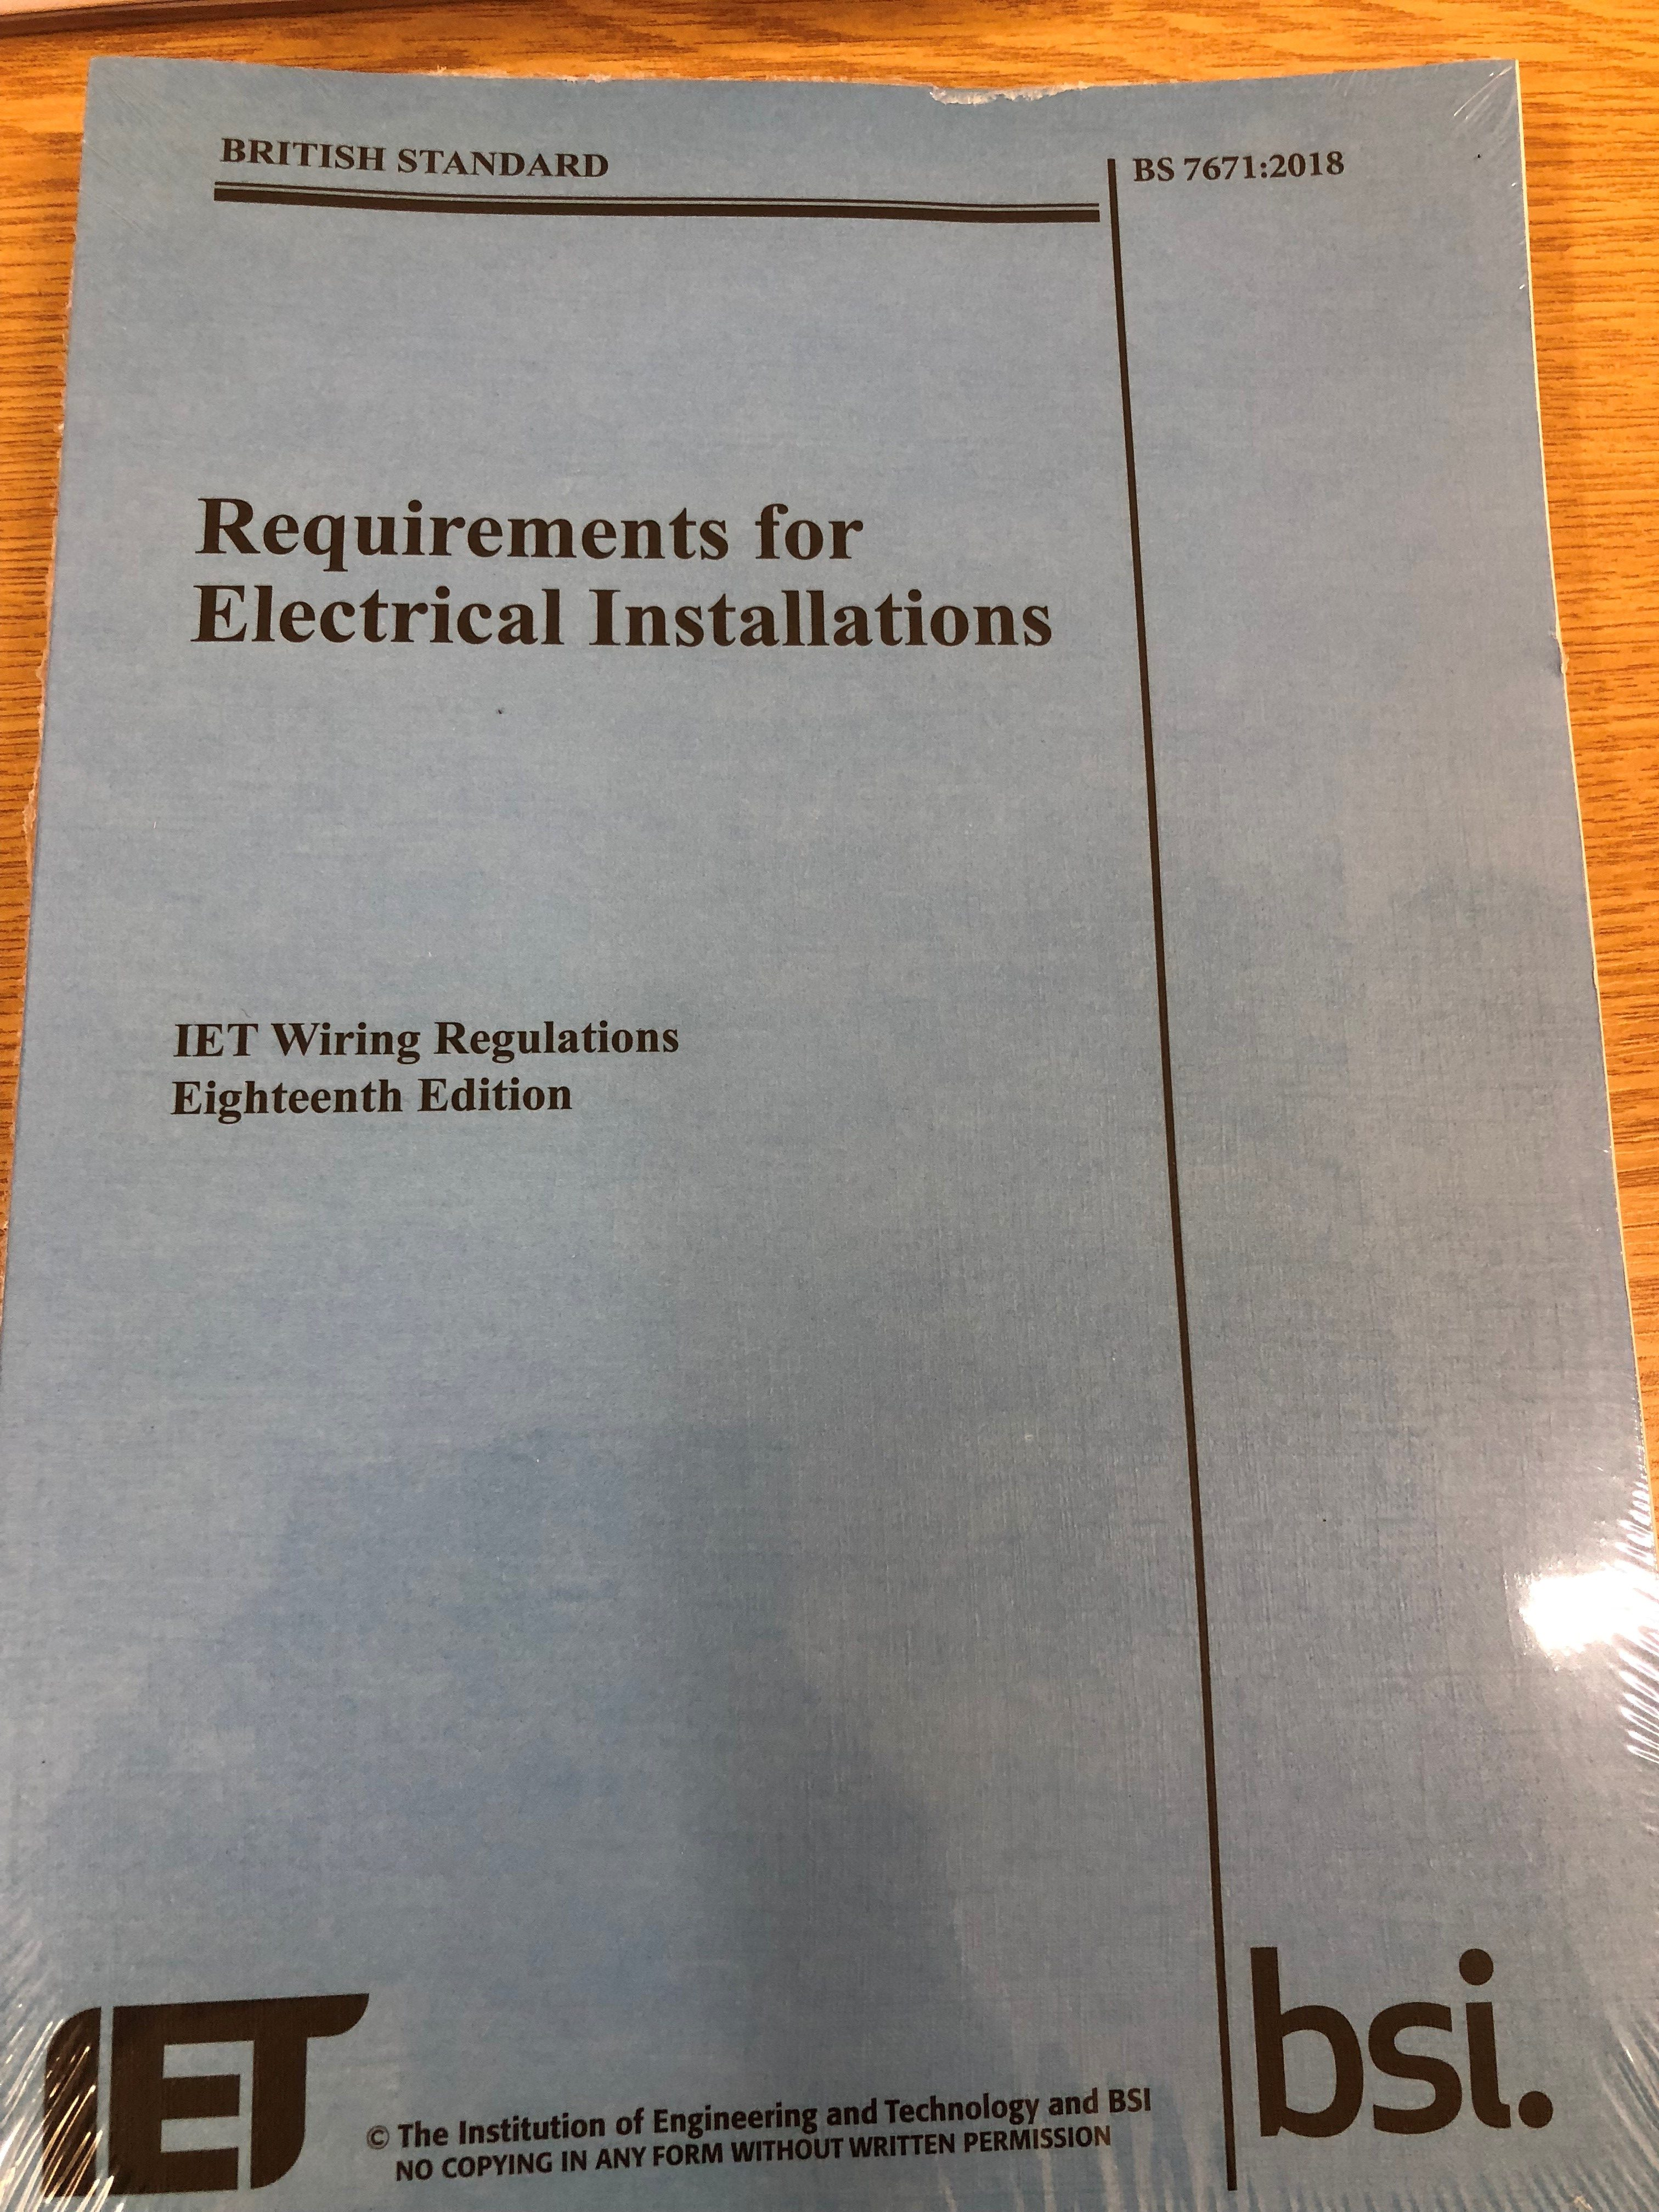 Cat 5 Wiring Rules